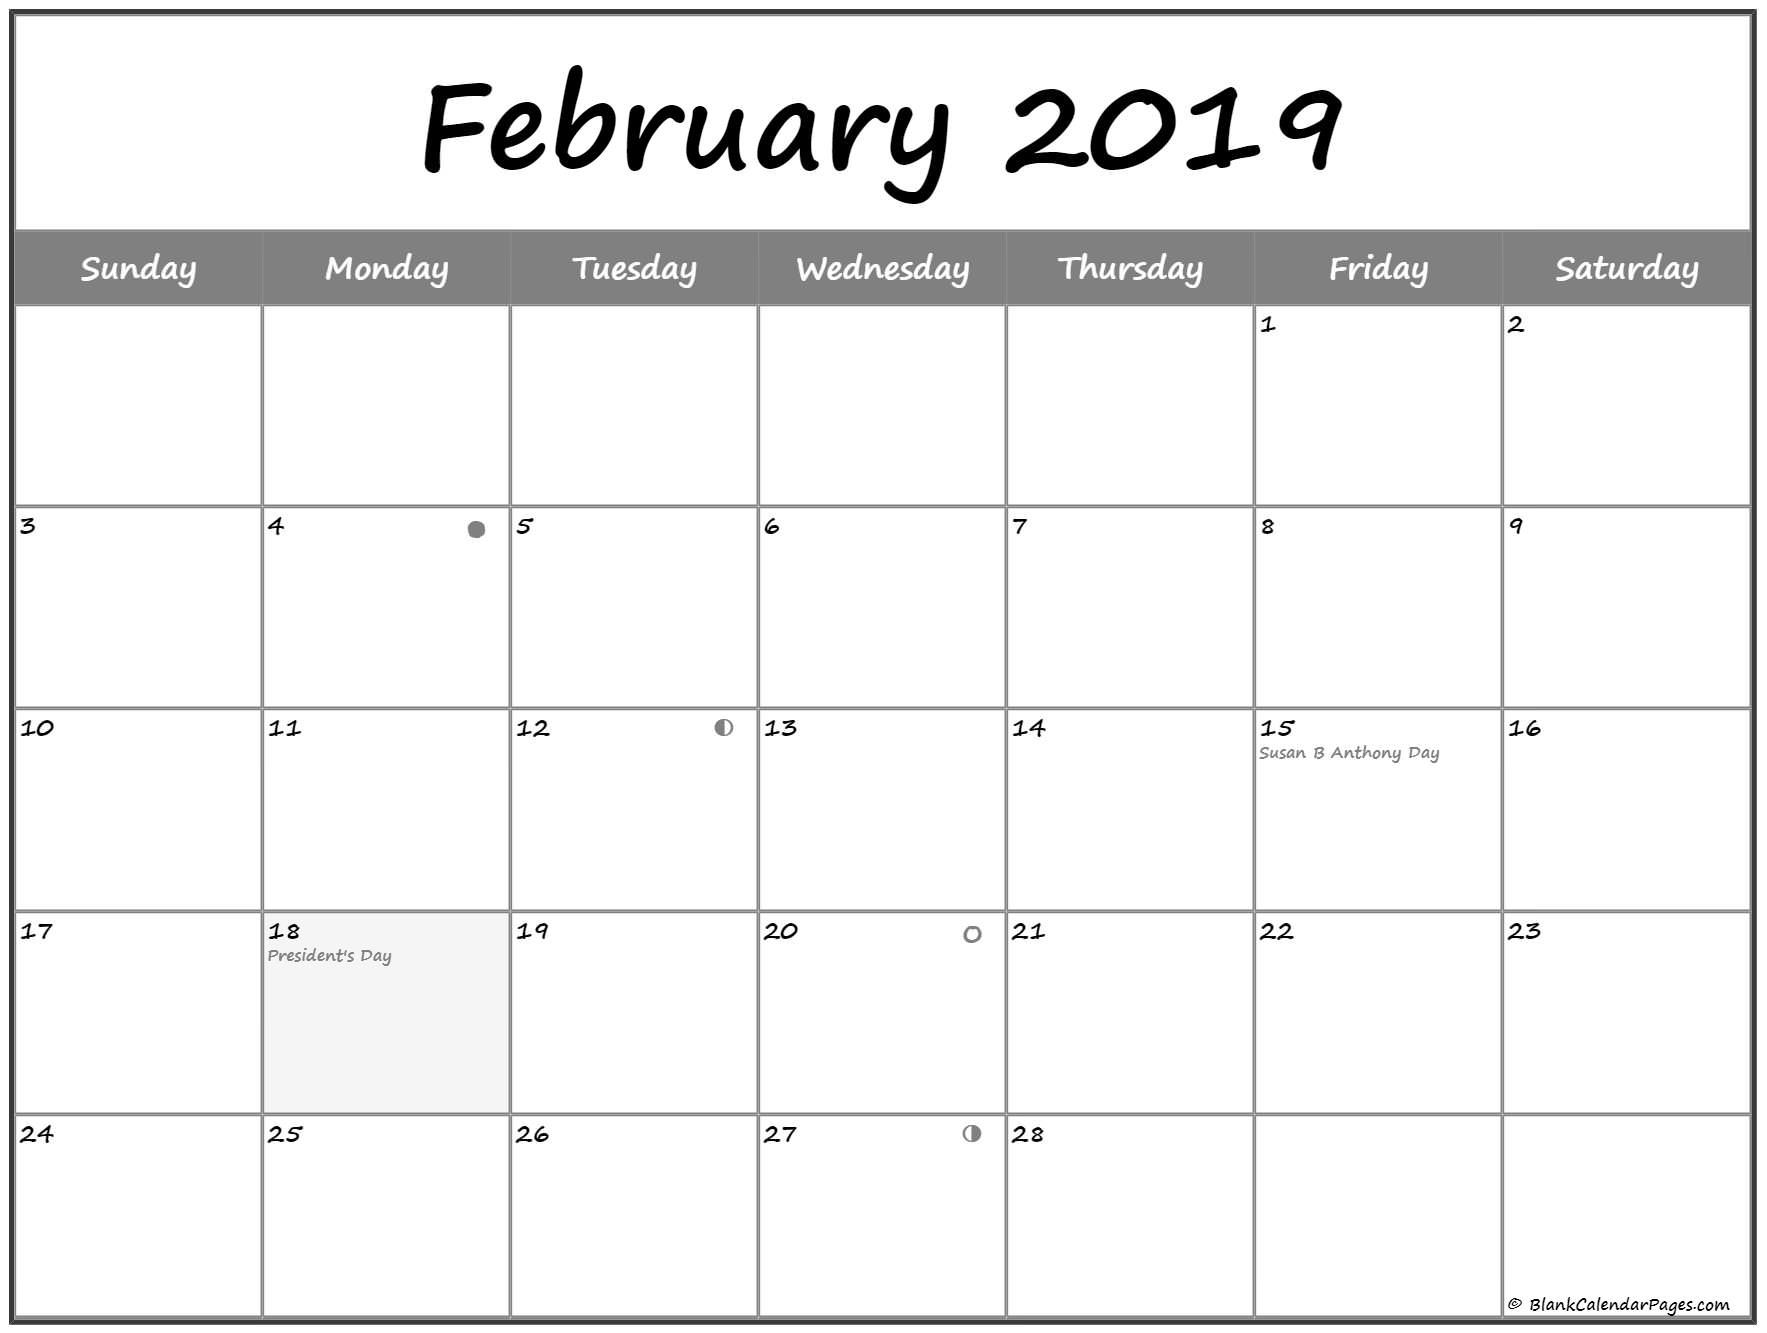 February 2019 Printable Moon Calendar February 2019 Calendar with Holidays India | 175+ Best February